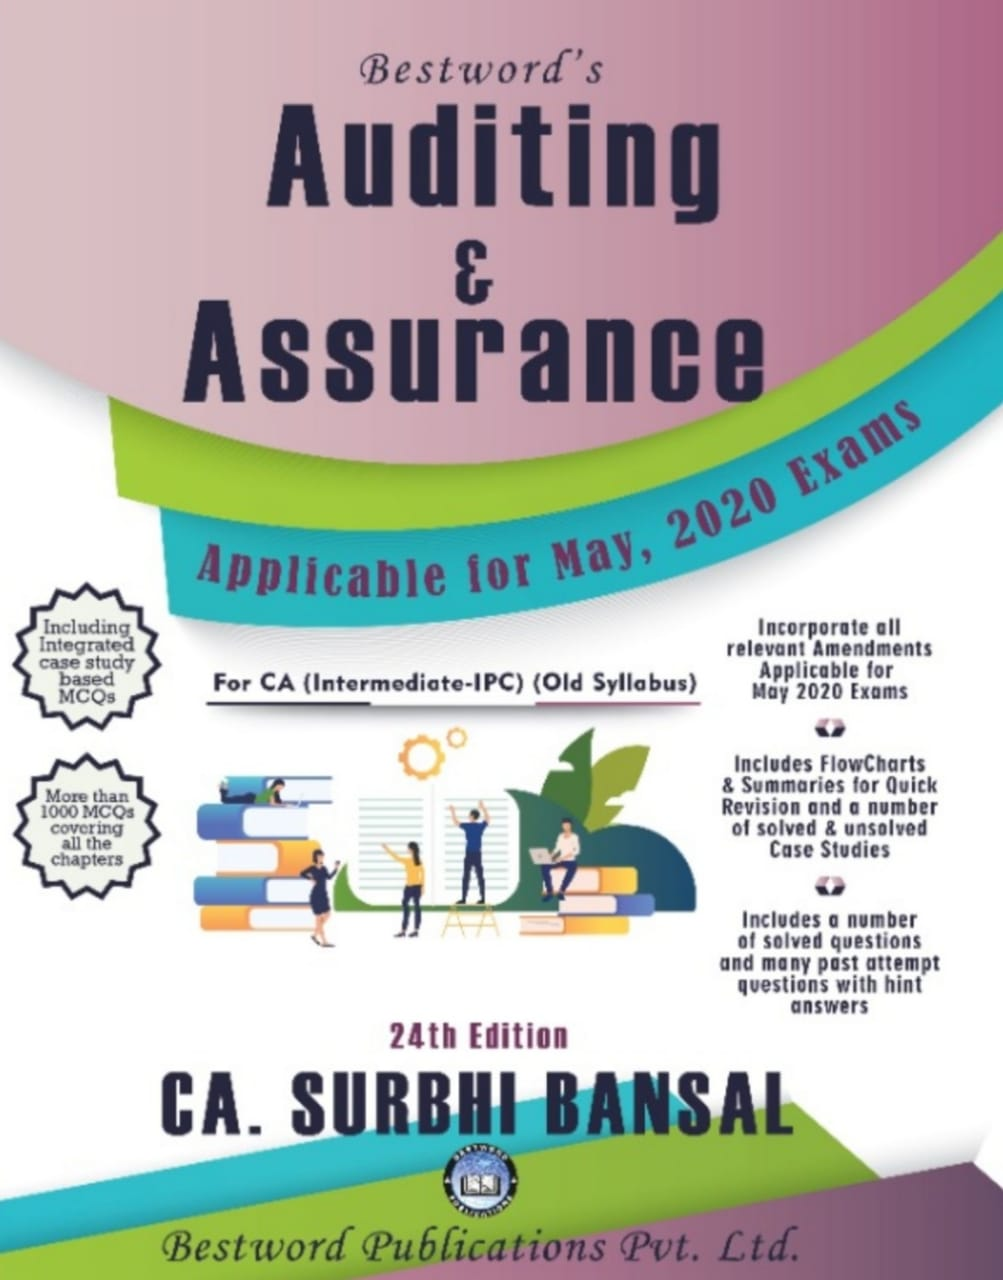 Bestword Auditing and Assurance for CA Intermediate (New Syllabus) by CA Surbhi bansal  for May, 2020 Exam